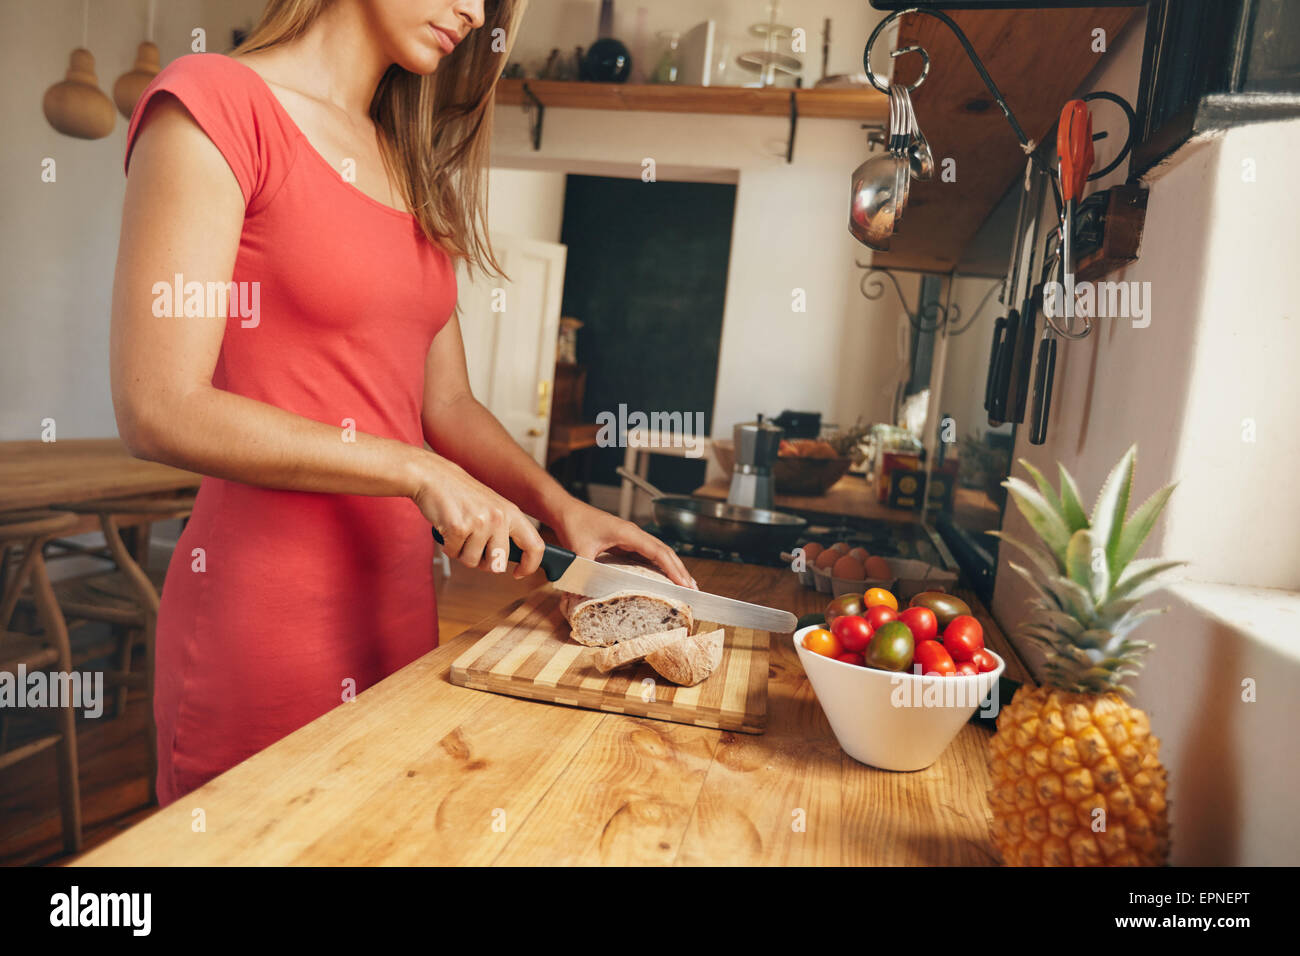 Cropped shot of a young woman slicing a fresh baked loaf of bread on a domestic kitchen counter. Female making morning - Stock Image